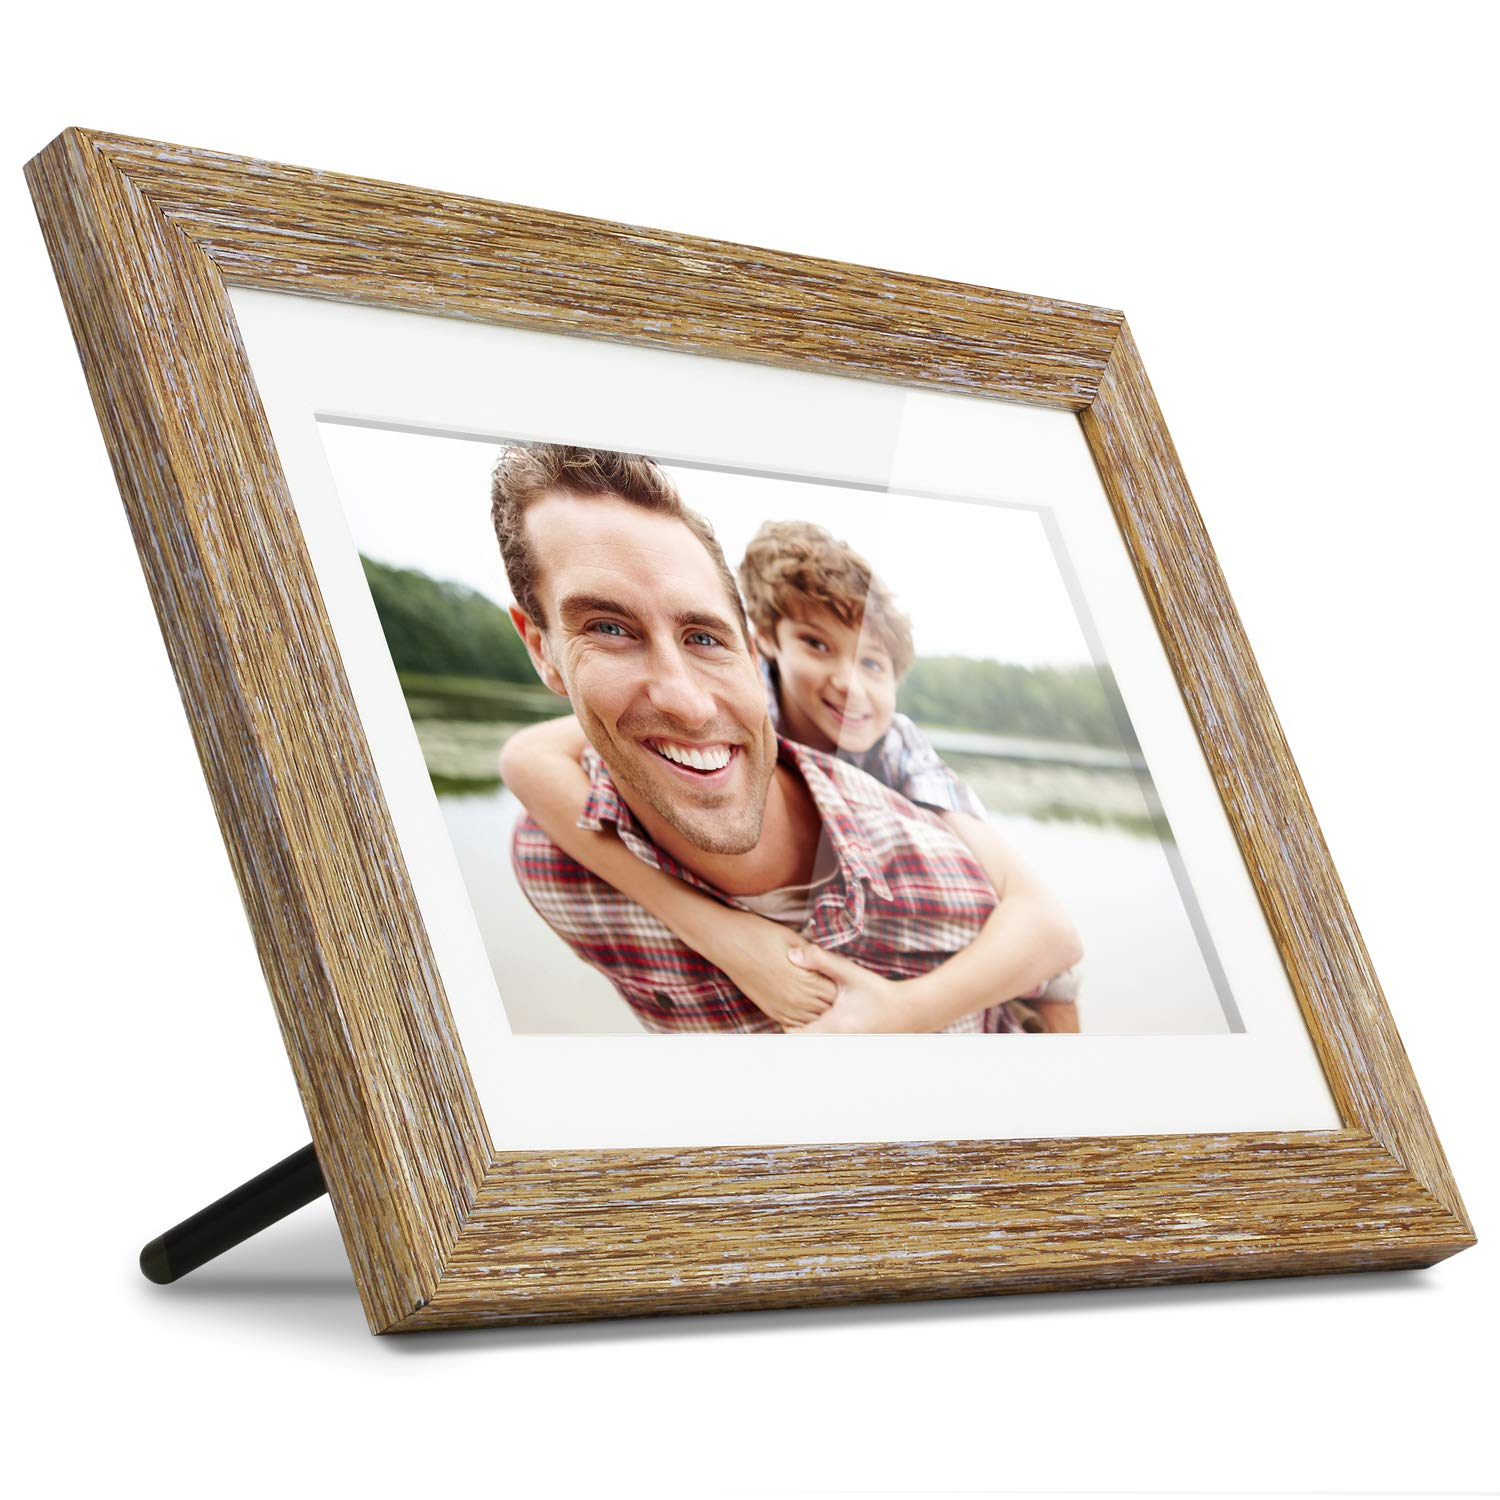 Aluratek (ADPFD10F) 10 inch Digital Photo Frame with Auto Slideshow, Distressed Wood Border, 1024 x 600, 16: 9 Aspect Ratio, Wall Mountable by Aluratek (Image #1)